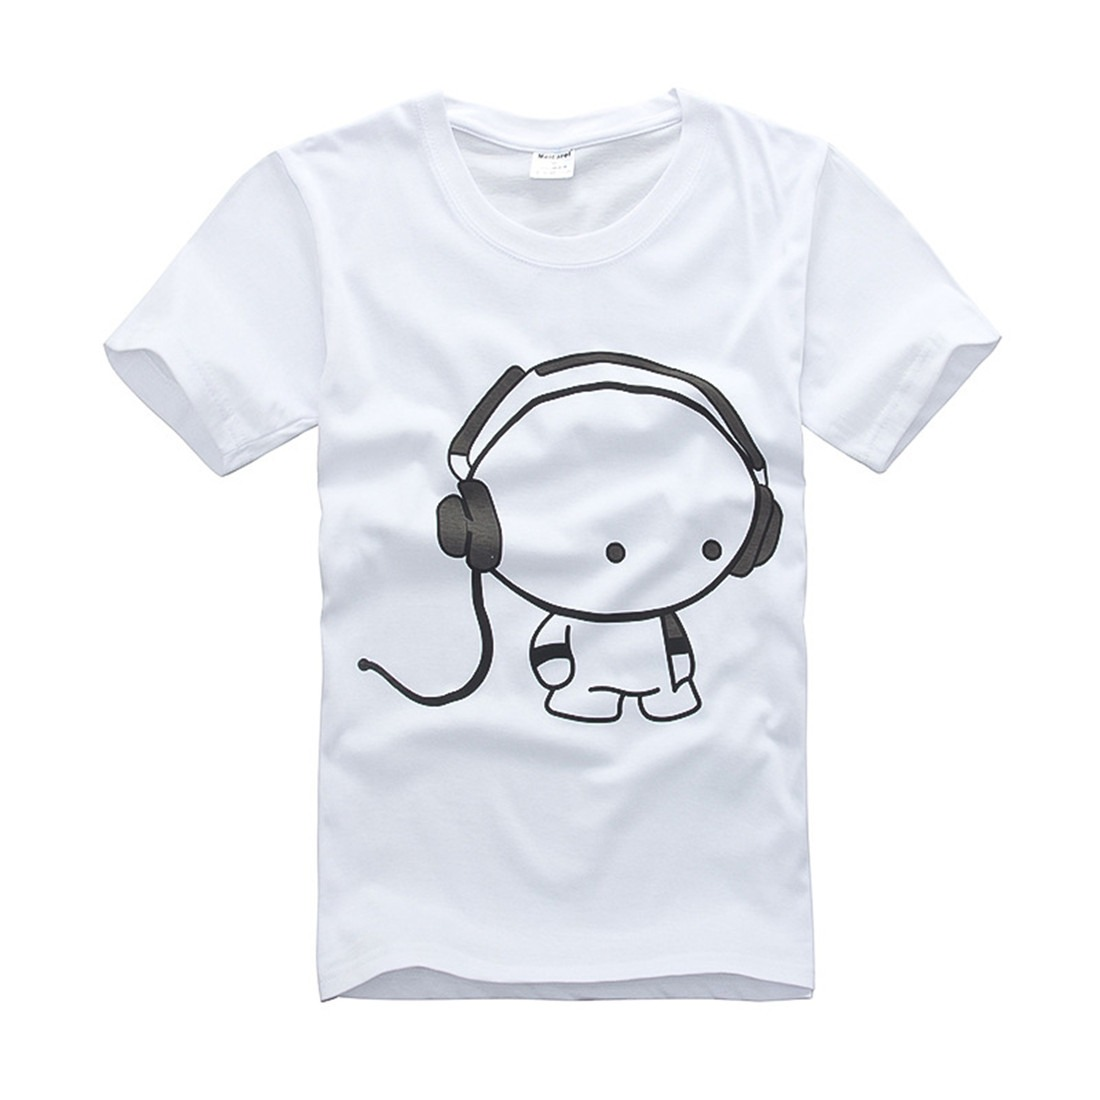 Men's Cartoon Headset Boy Cotton Basic Plus 3D Print Short Sleeve Black T-Shirt